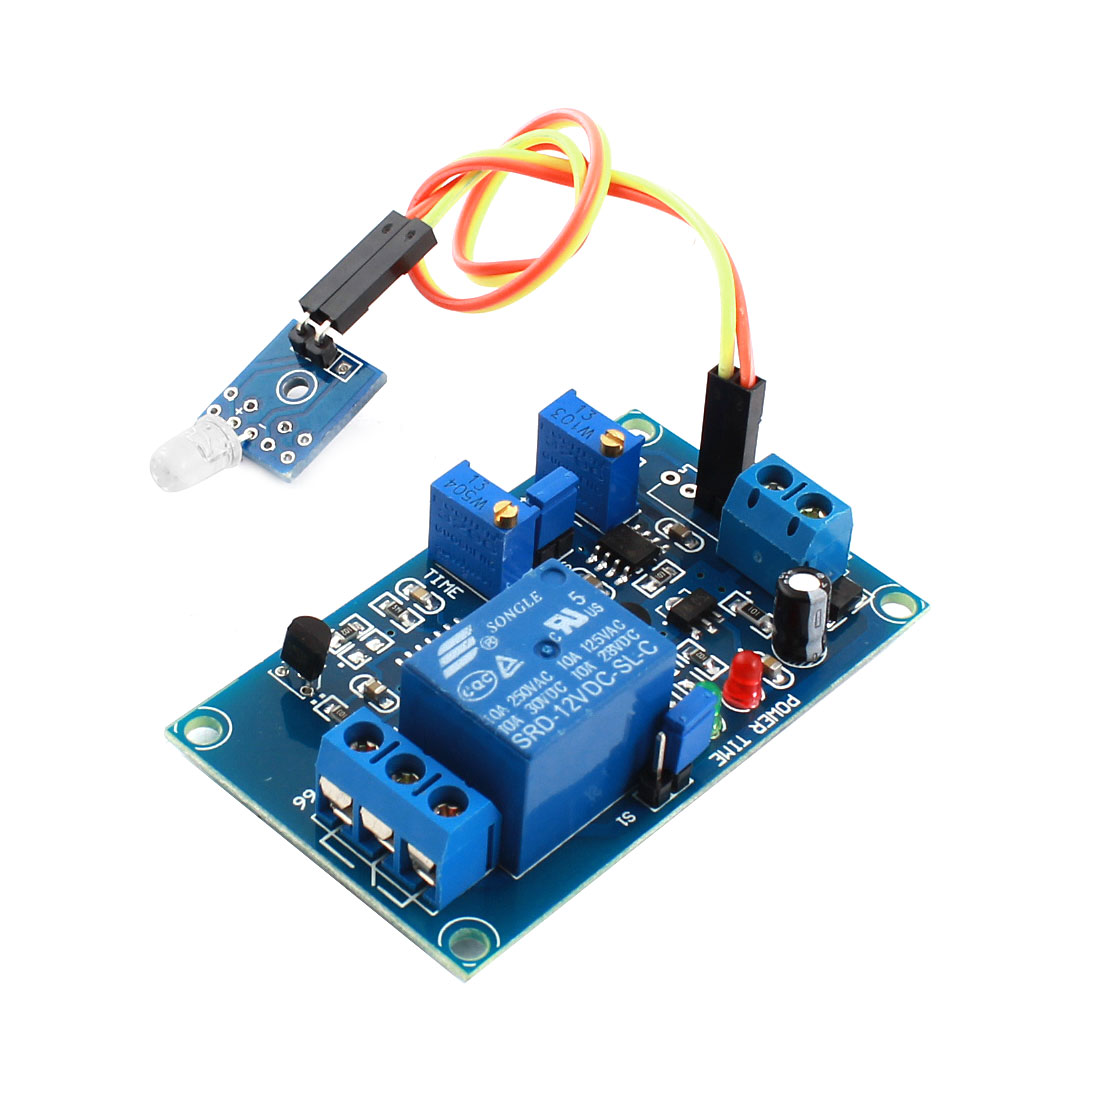 DC 12V Non-light Operation 1 Channels Photosensitive Diode Sensor Time Delay Relay Module